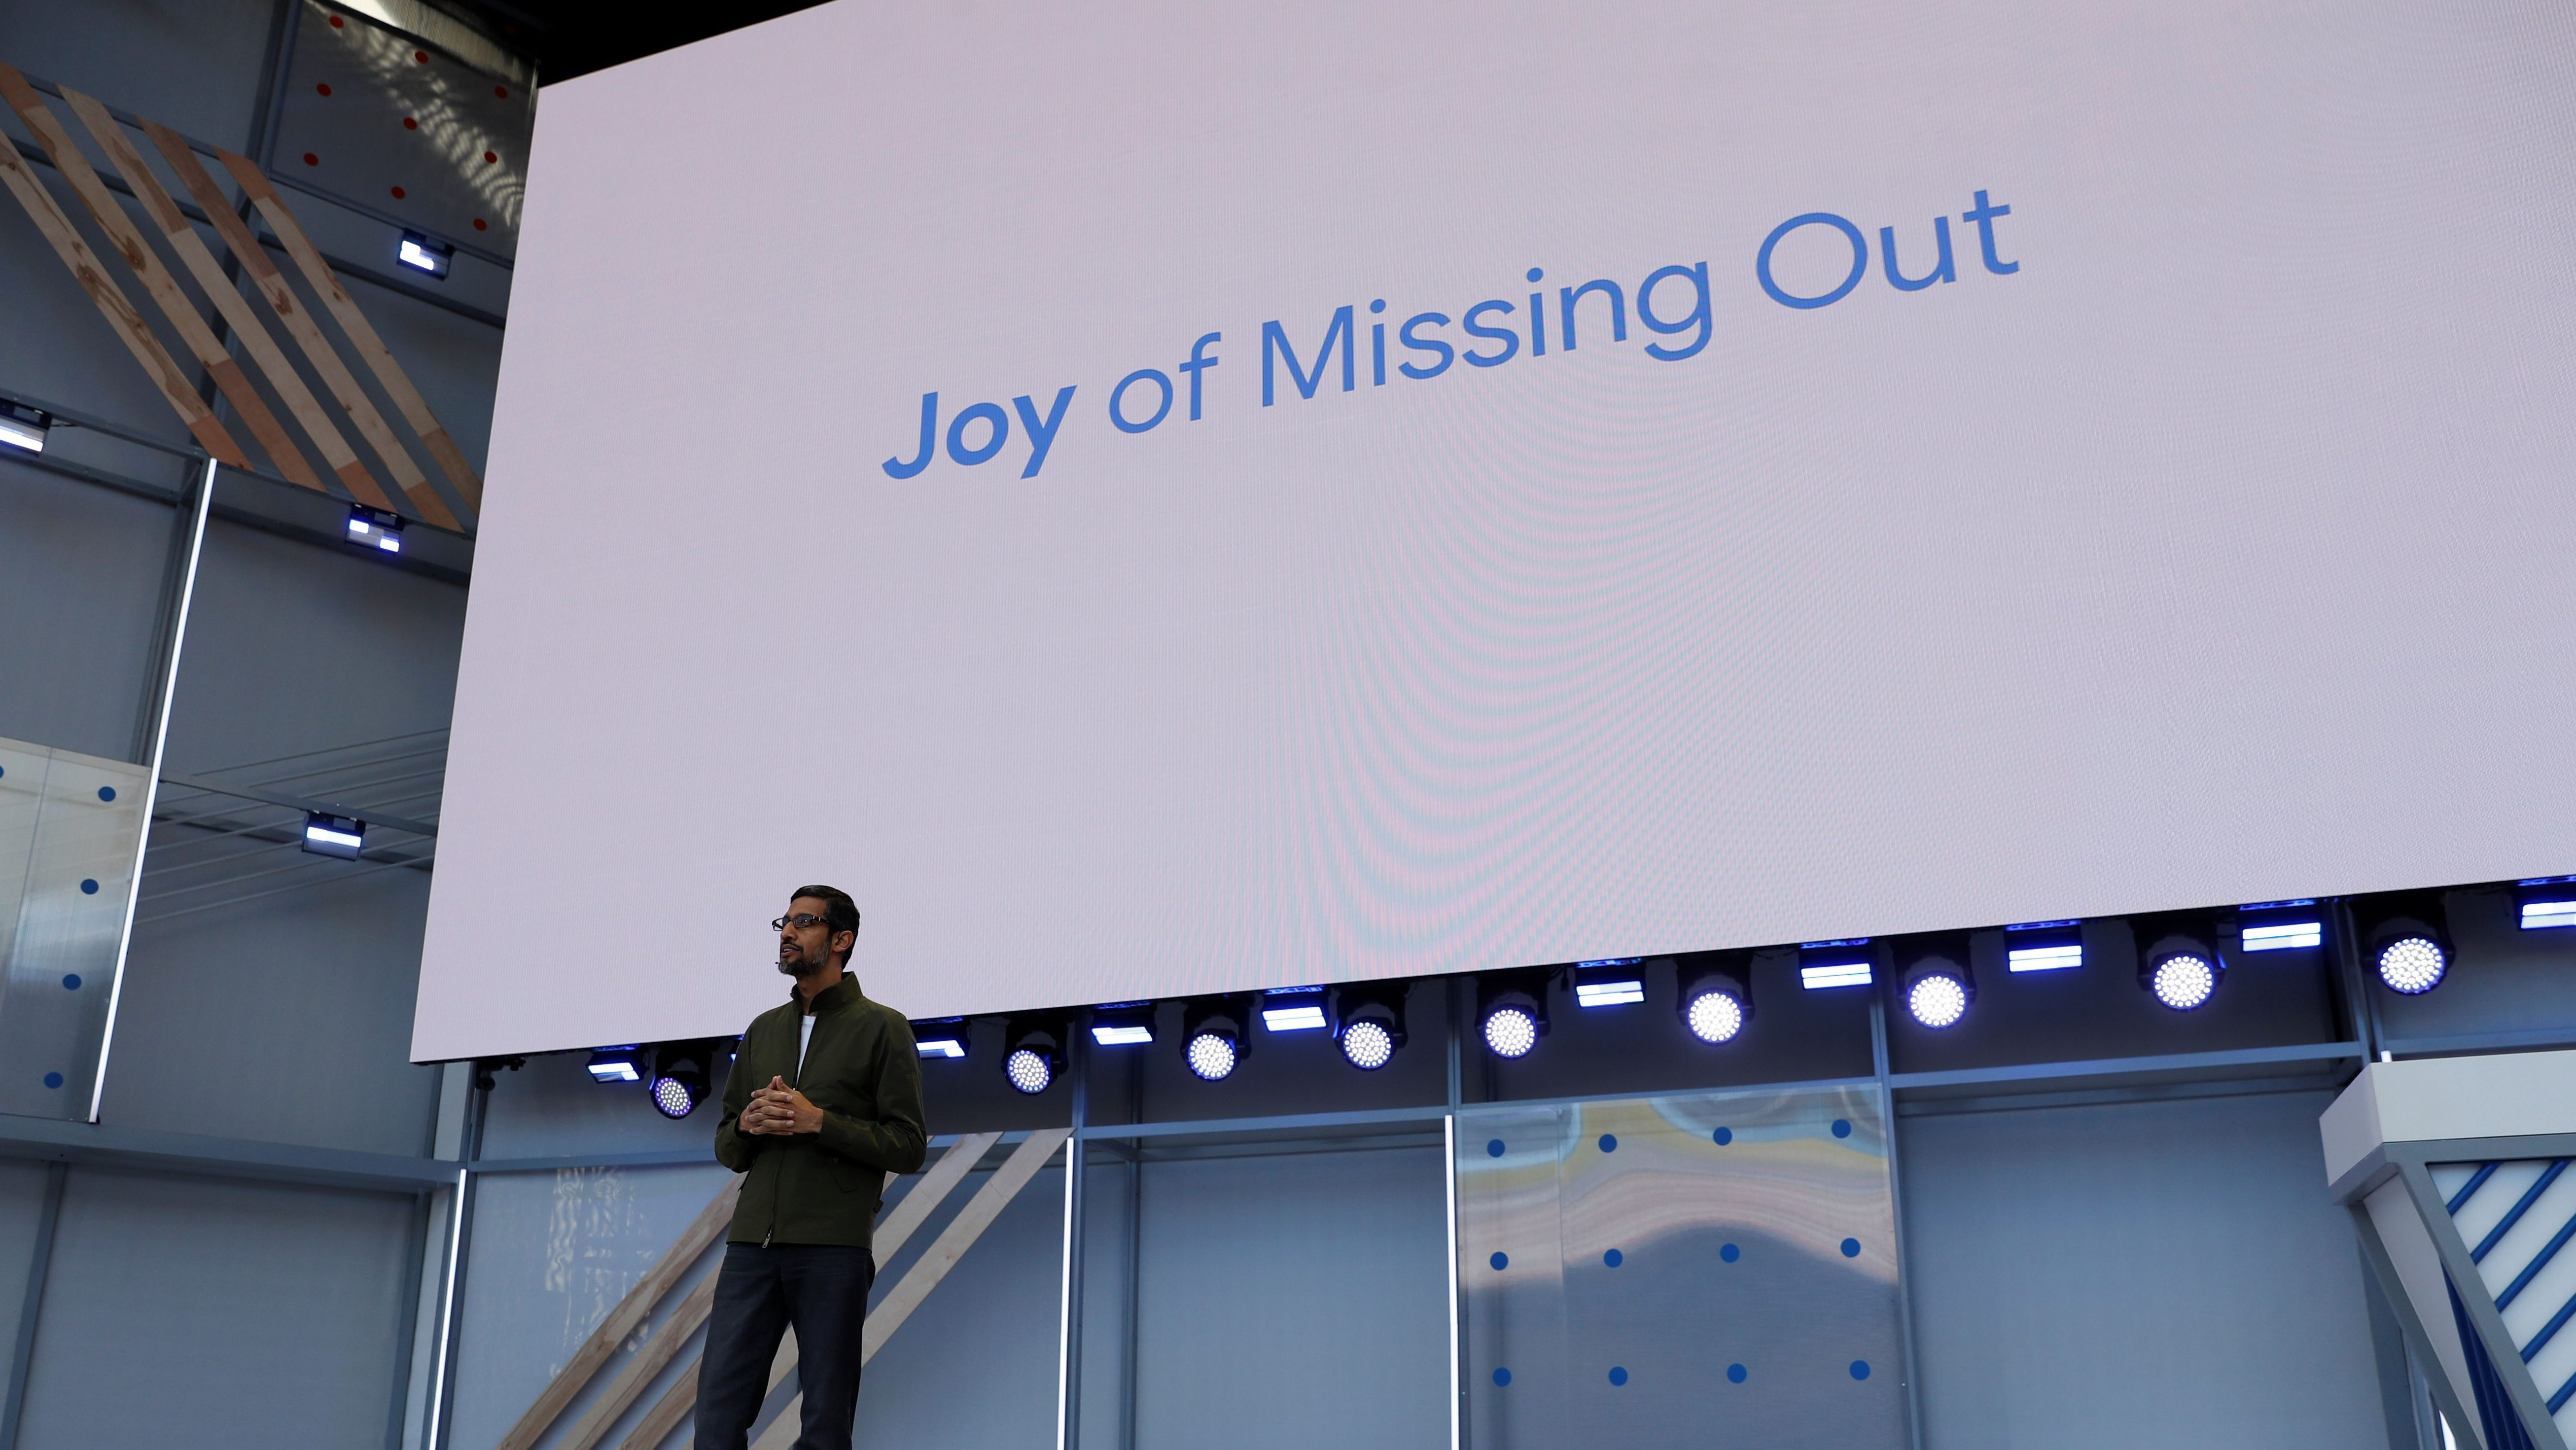 Google CEO Sundar Pichai speaks on stage during the annual Google I/O developers conference in Mountain View, California, May 8, 2018. REUTERS/ Stephen Lam - RC1429AA3000